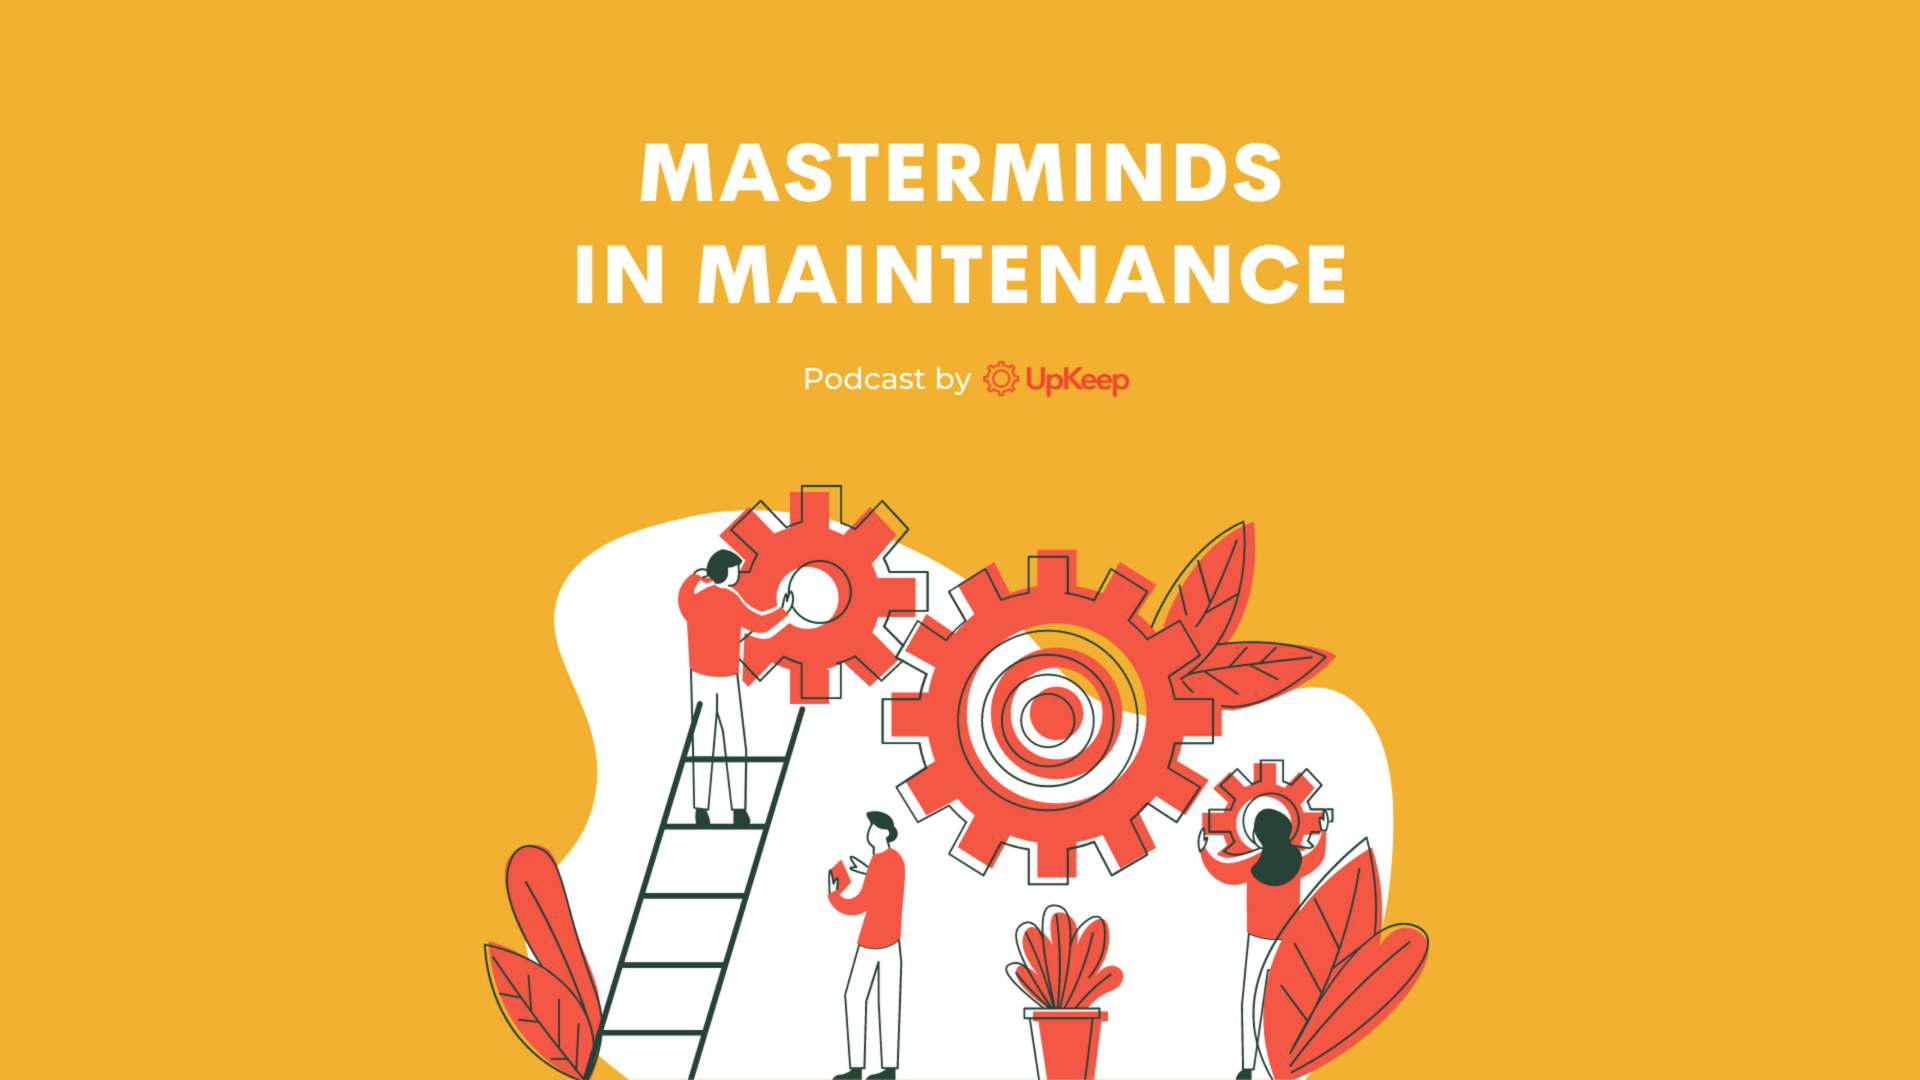 Masterminds in Maintenance